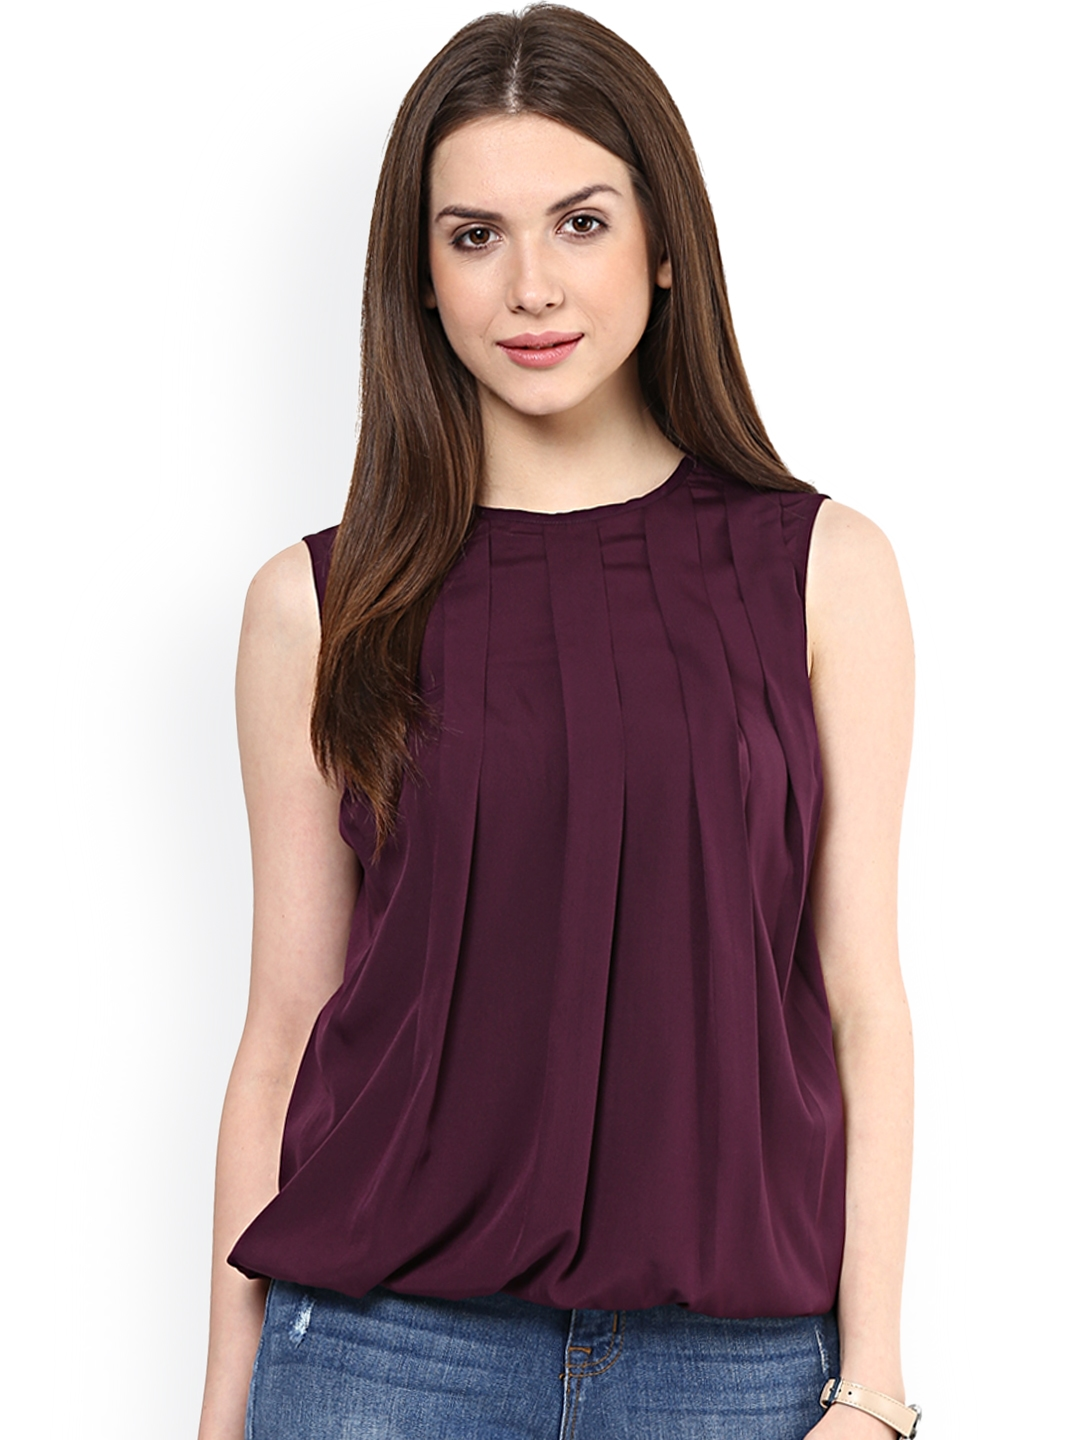 Women's Sleeveless Tops - Buy Sleeveless Tops For Women Online ...